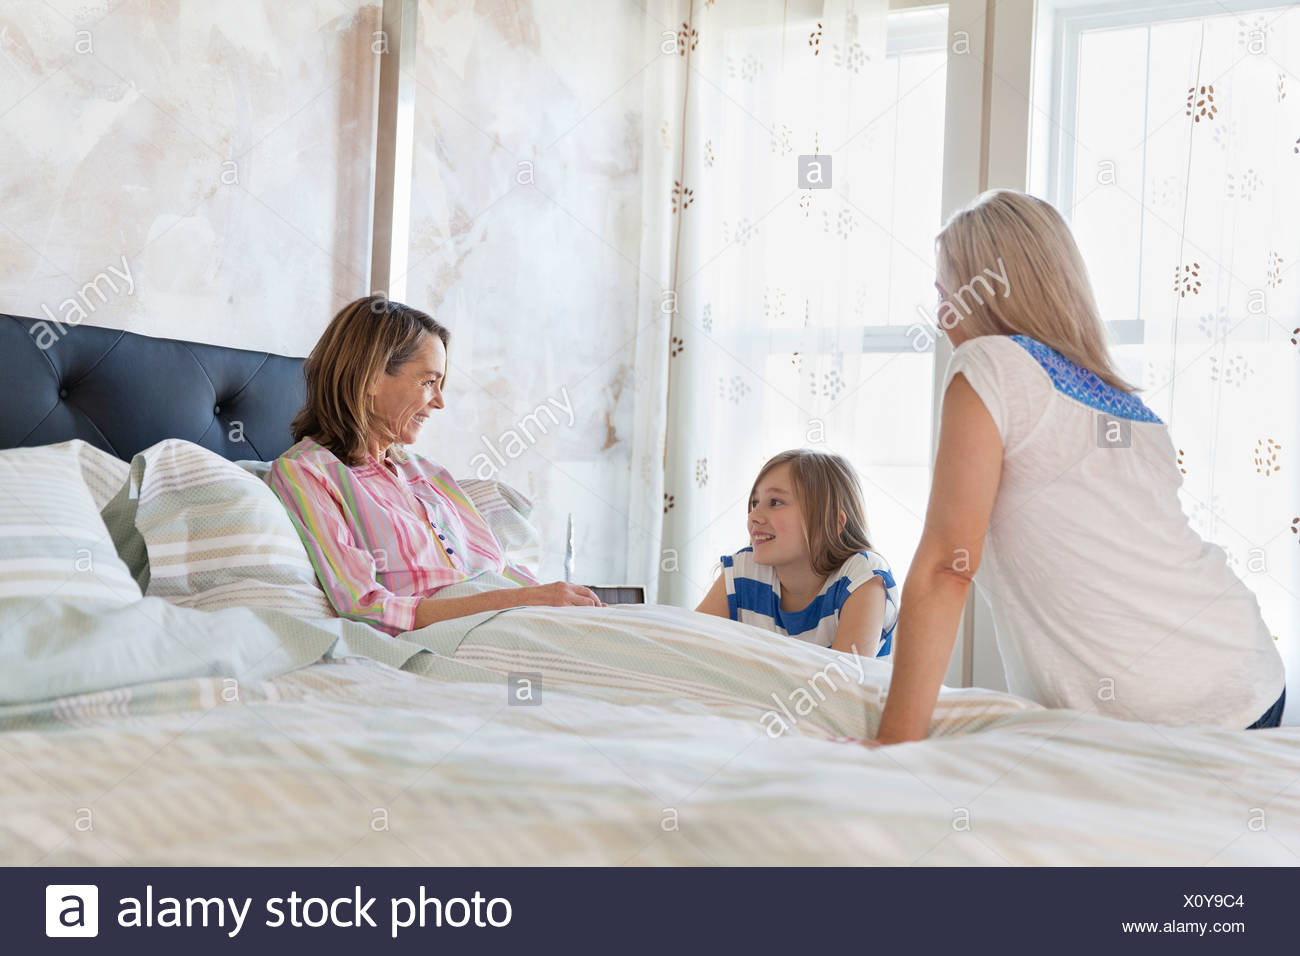 Senior woman in bed visiting with daughter and granddaughter - Stock Image